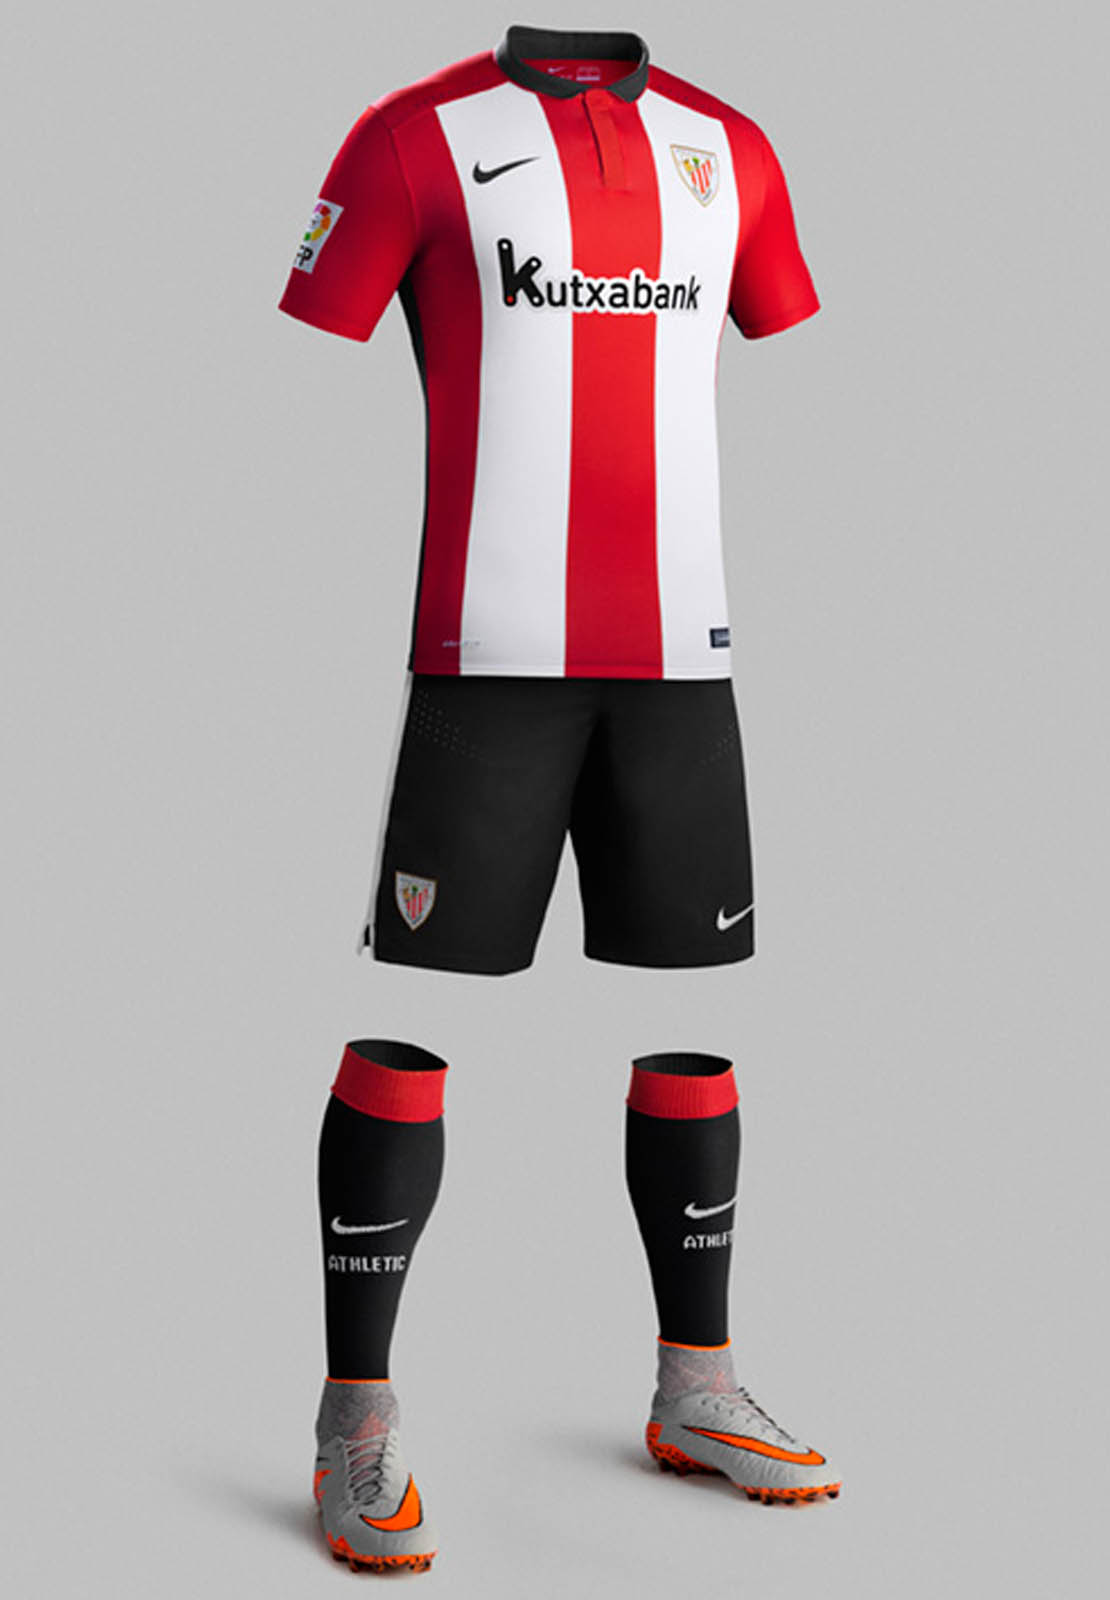 repetición Accidentalmente Proceso  Nike Athletic Bilbao 15-16 Home Jersey / Have a Nice Day ! – Nice Day Sports